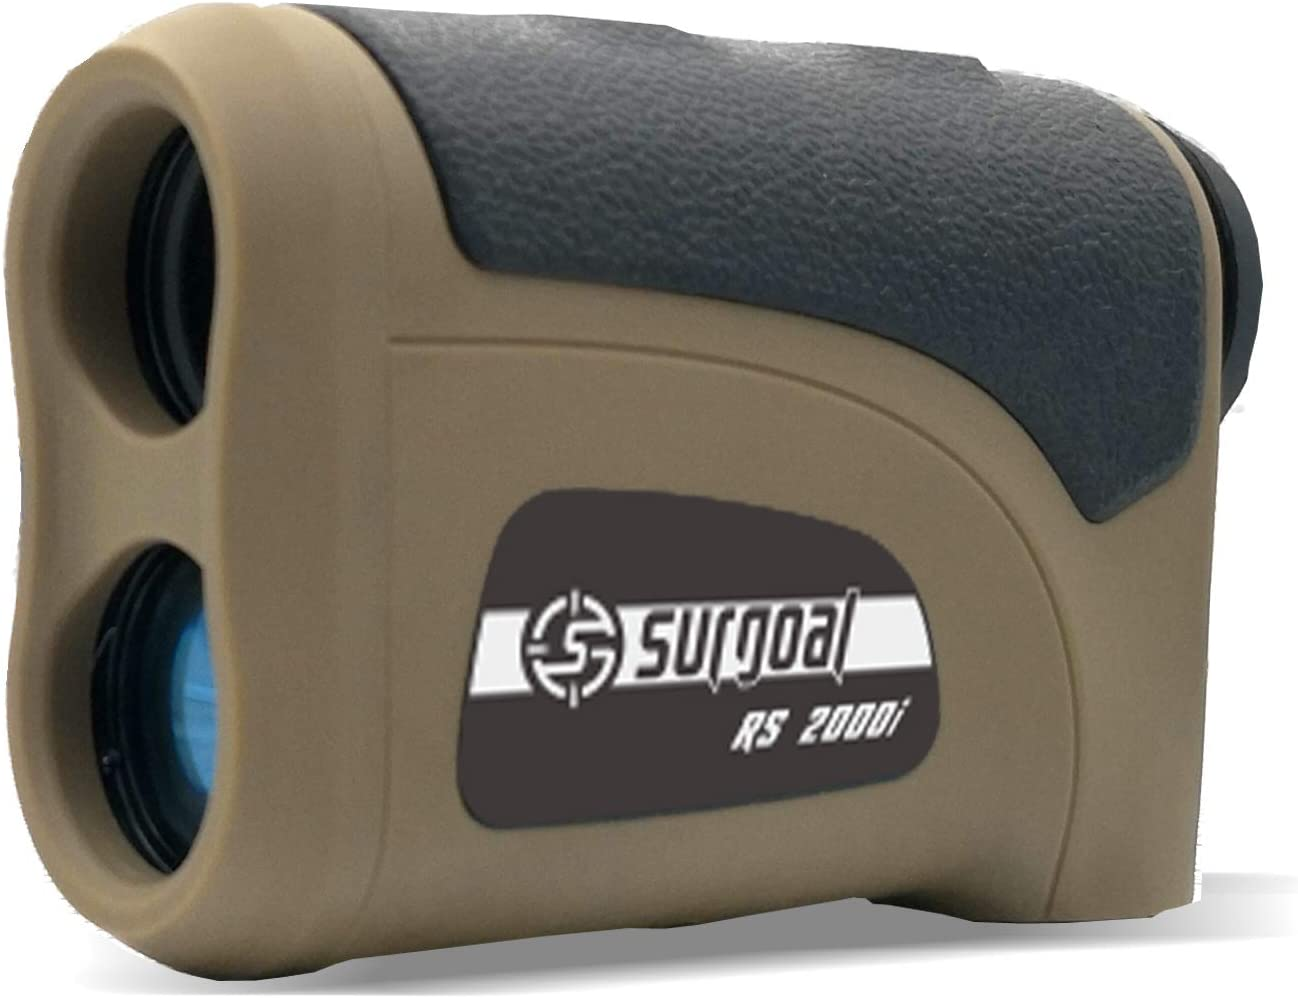 Surgoal Waterproof Laser Range Finder 2000YD/6000FT/1828M(i Plus) (Brown) High Accuracy All Purpose